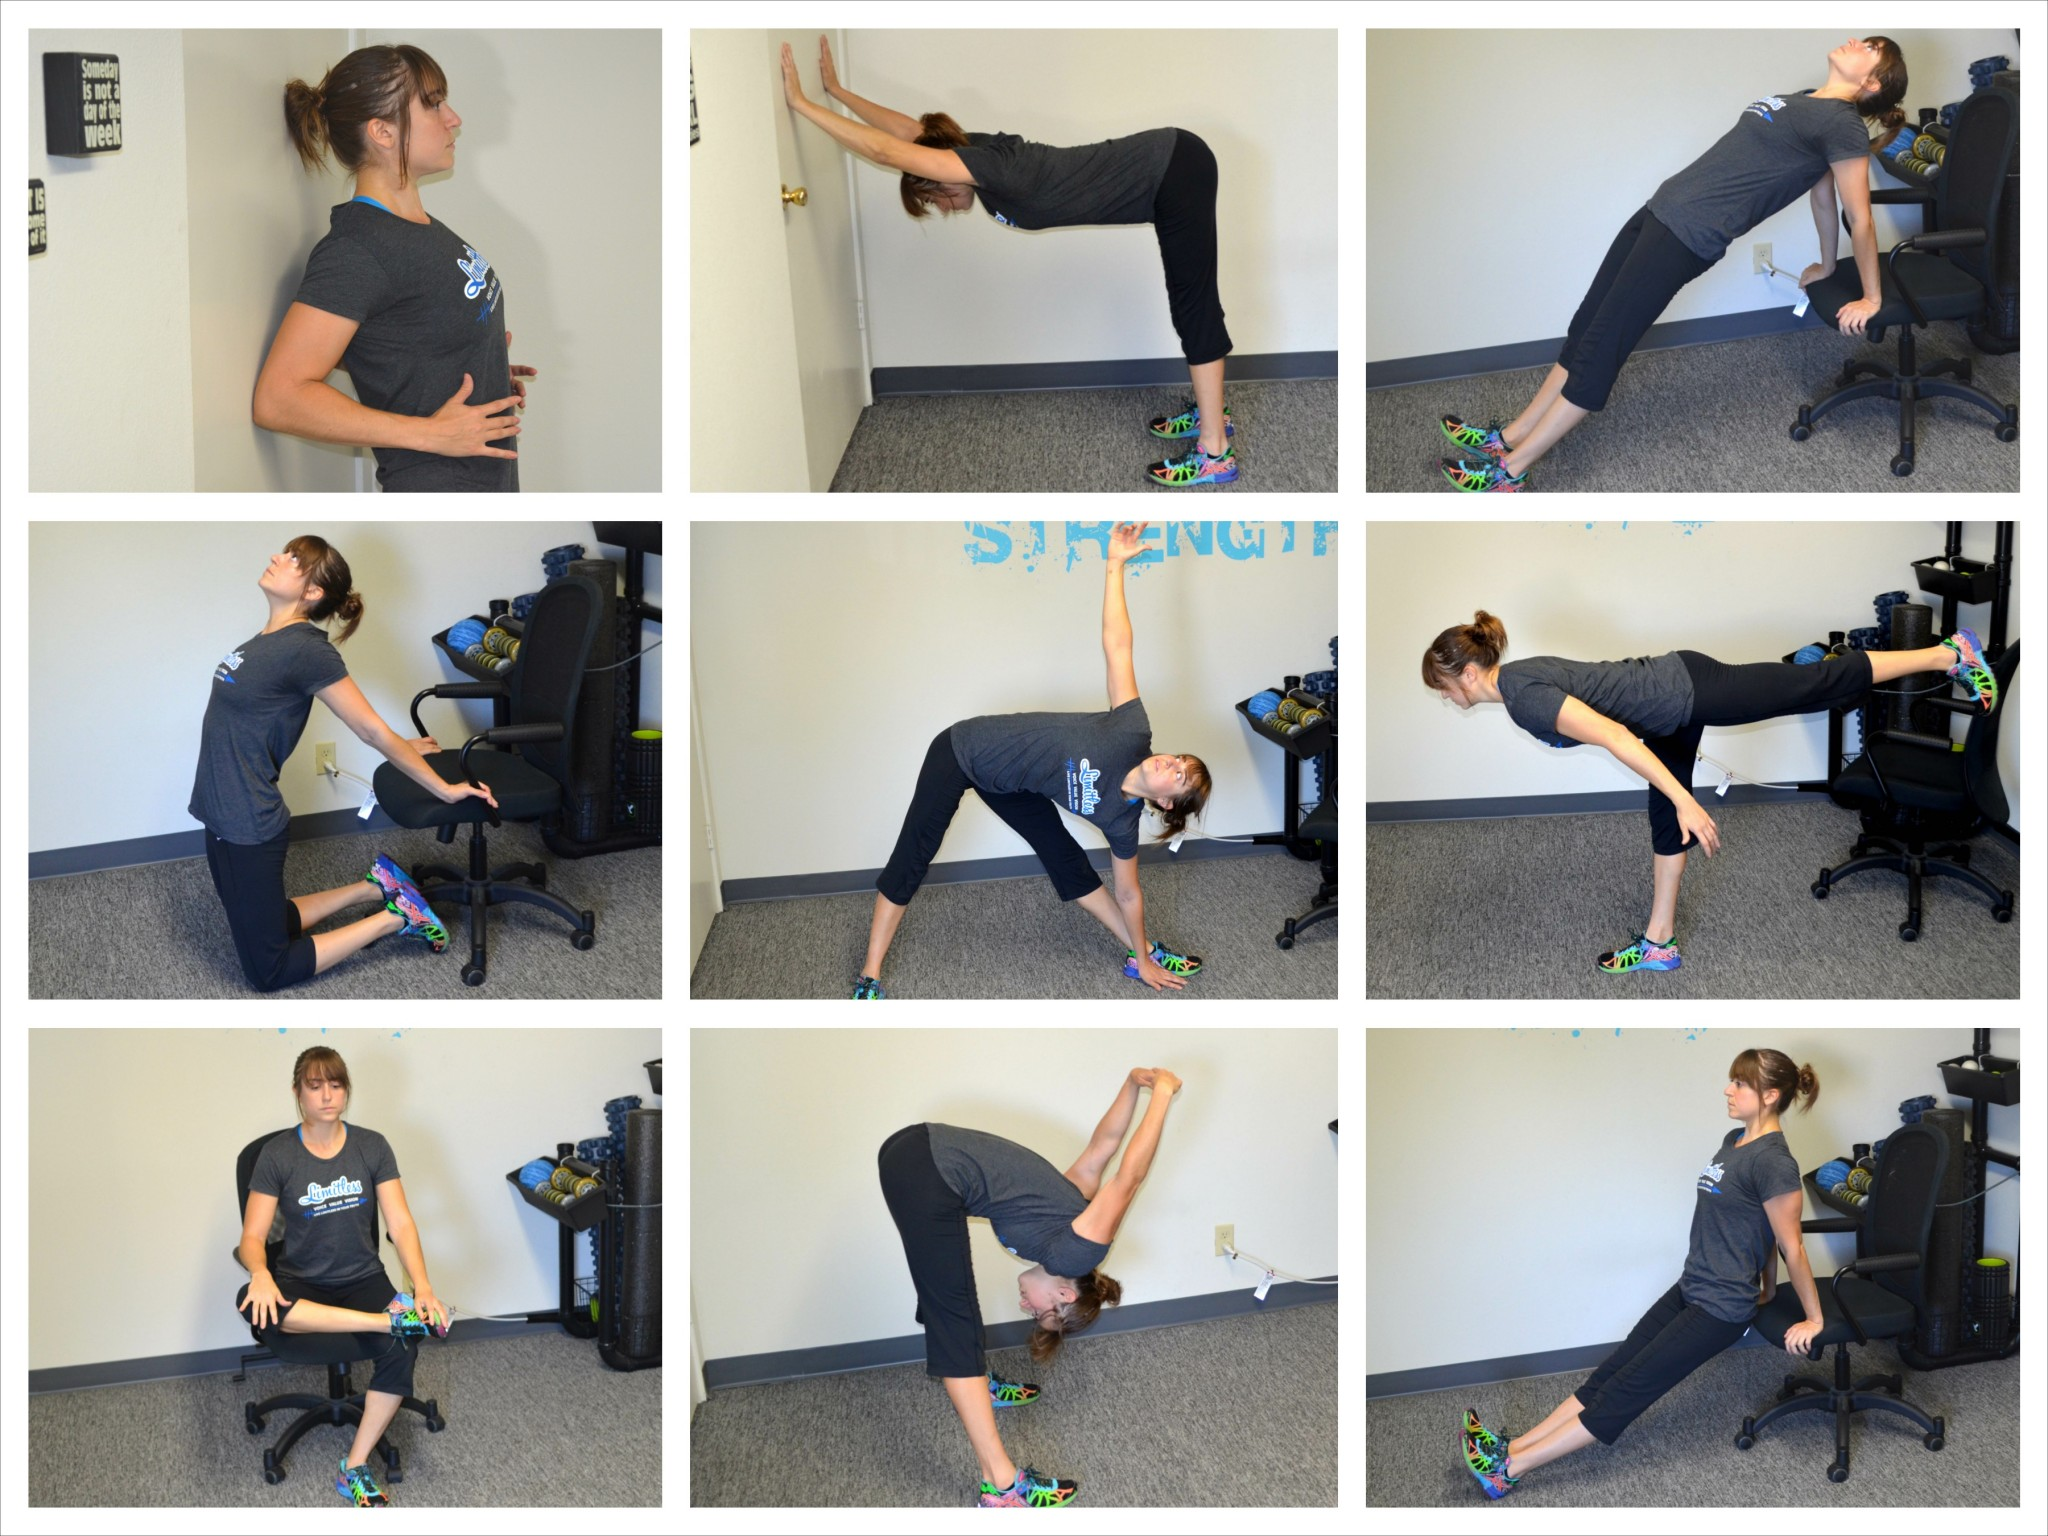 Desk Exercises – 10 Isometric Moves and Stretches To Do At ...